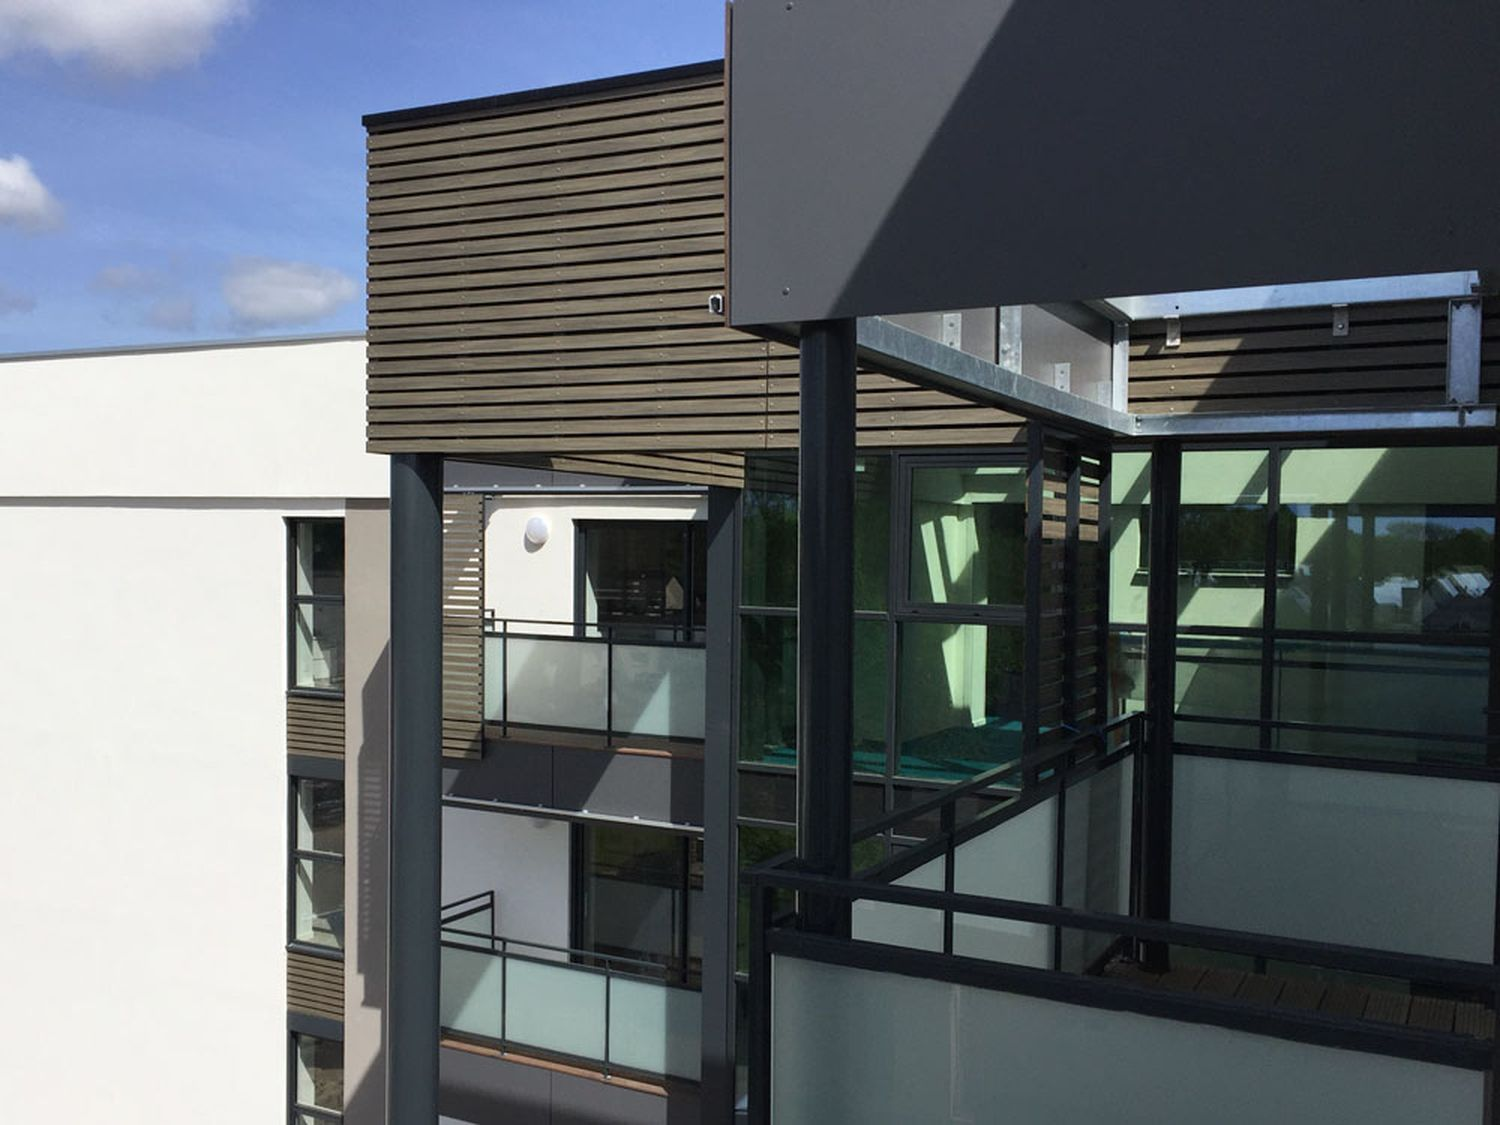 Rénovation-transformation-dun-hotel-en-residence-service-à-Sainte-Anne-dAuray-Architecte-Vannes-11